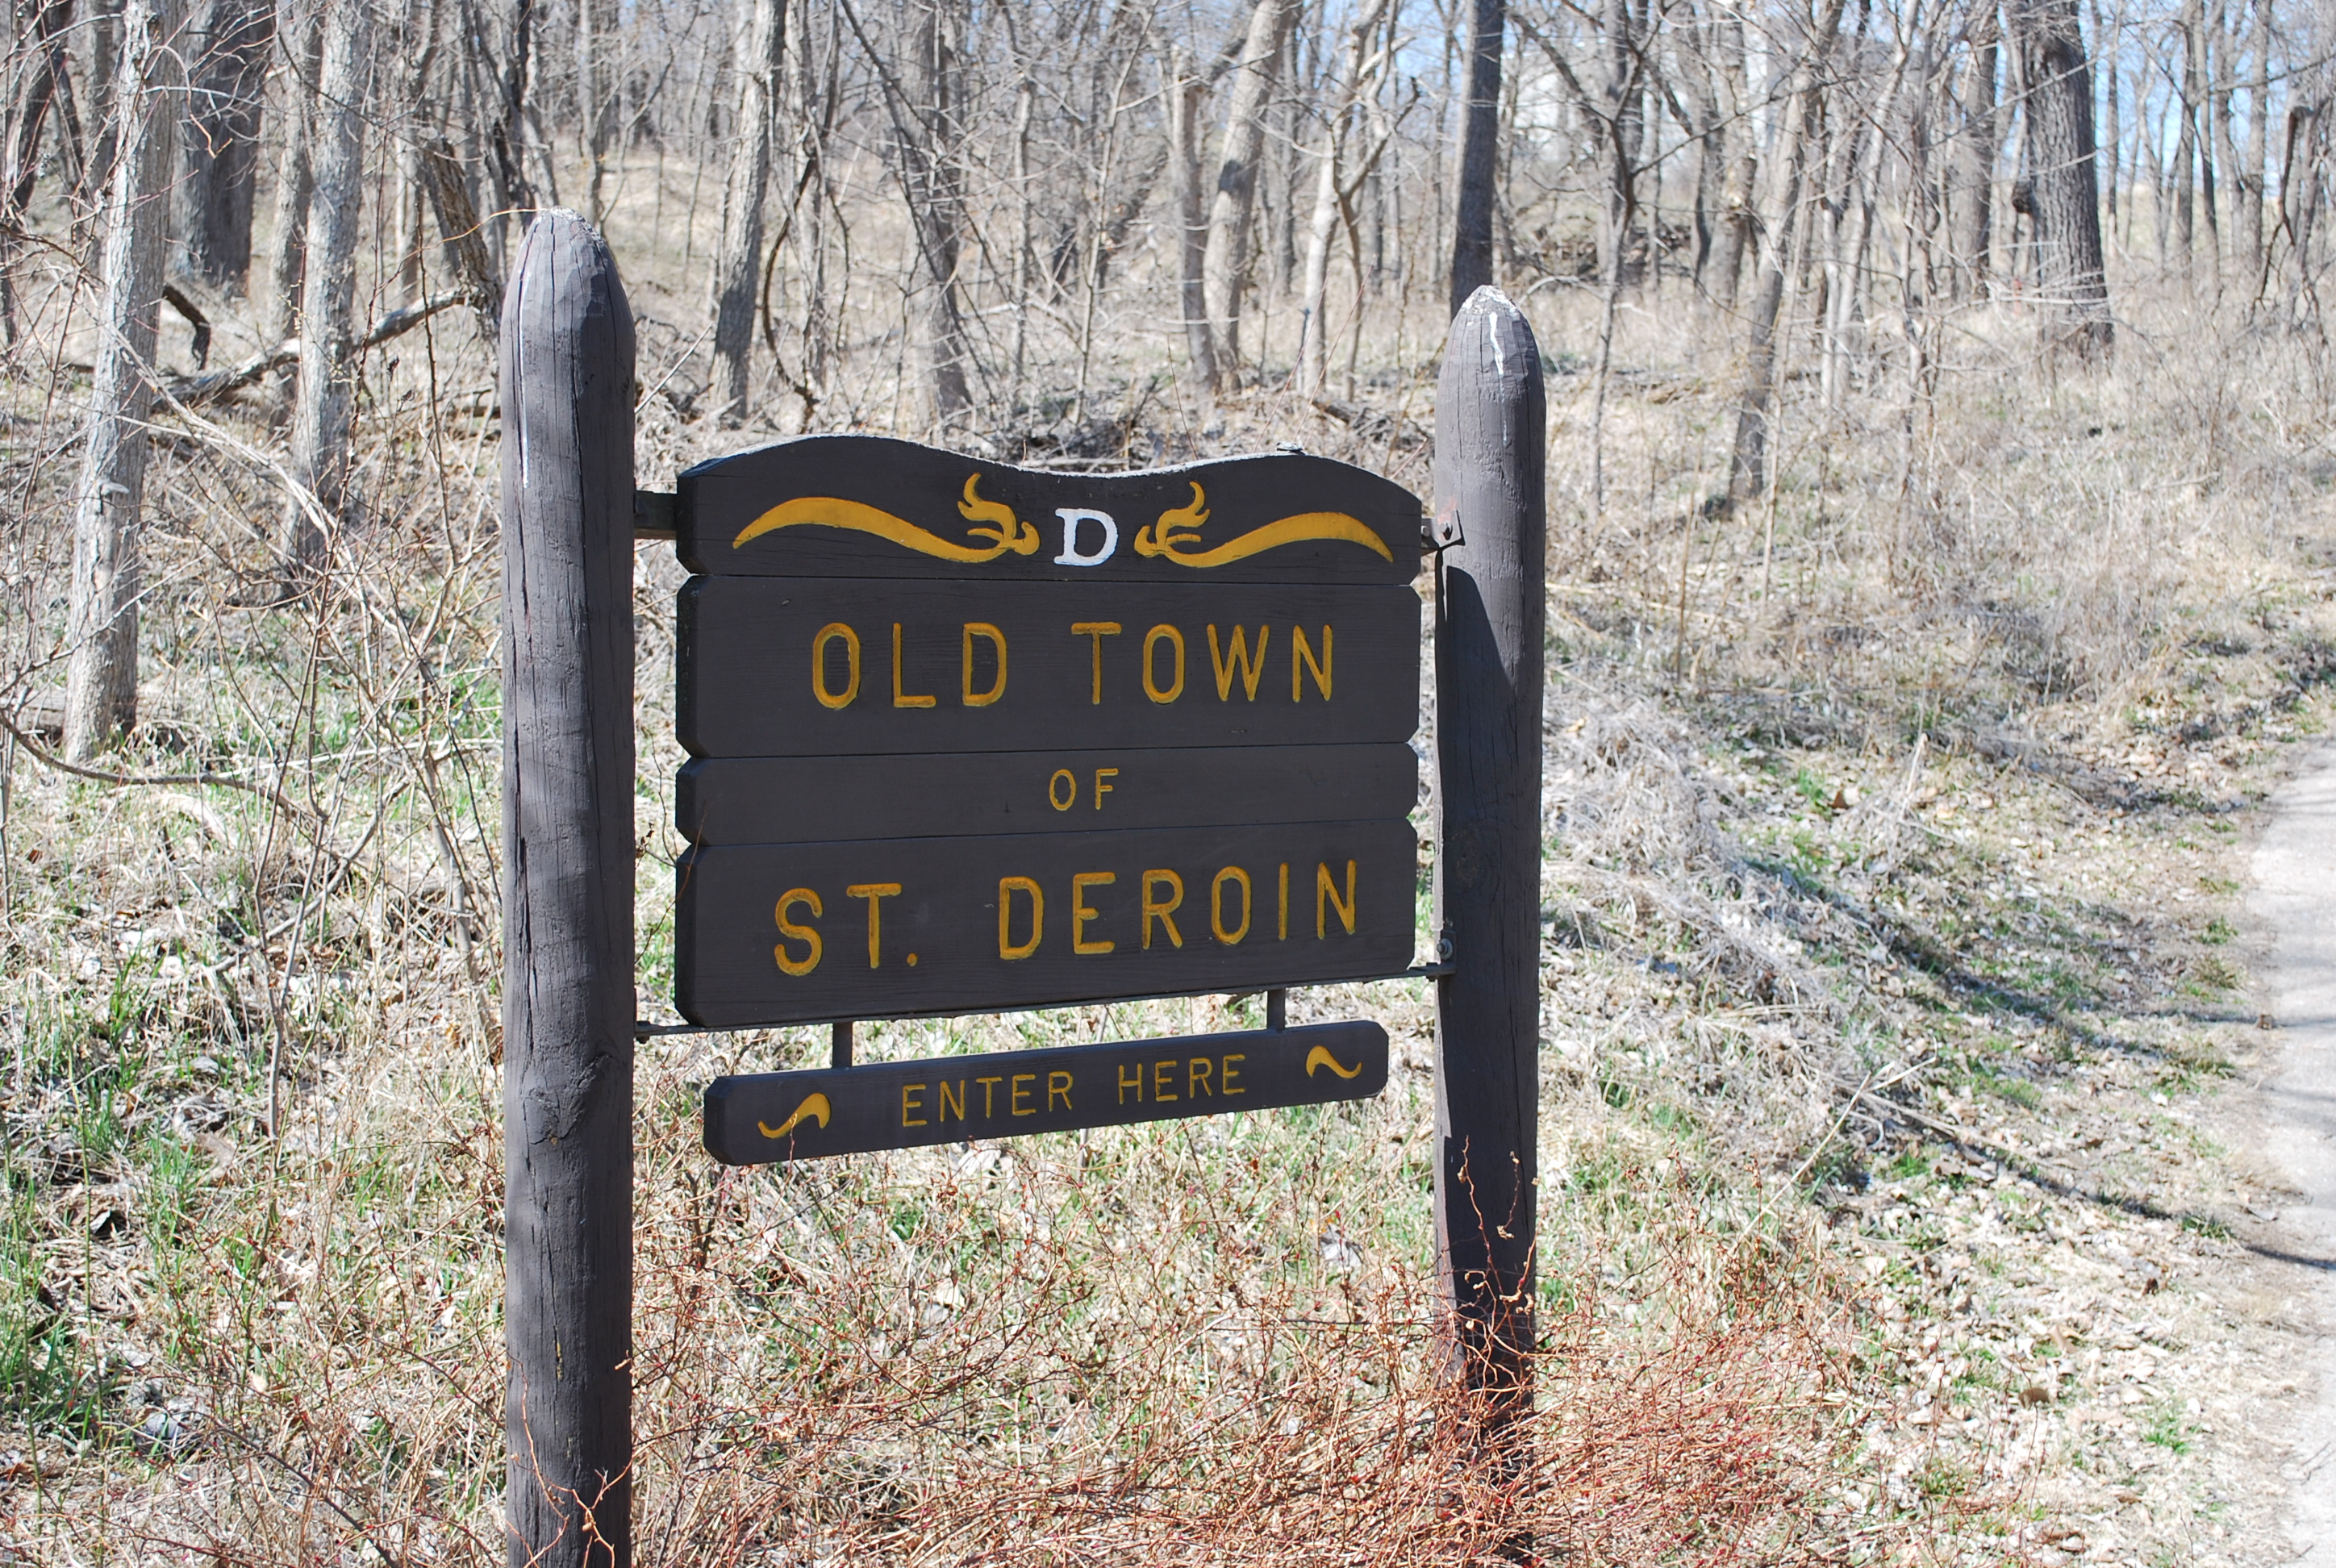 St. Deroin Sign